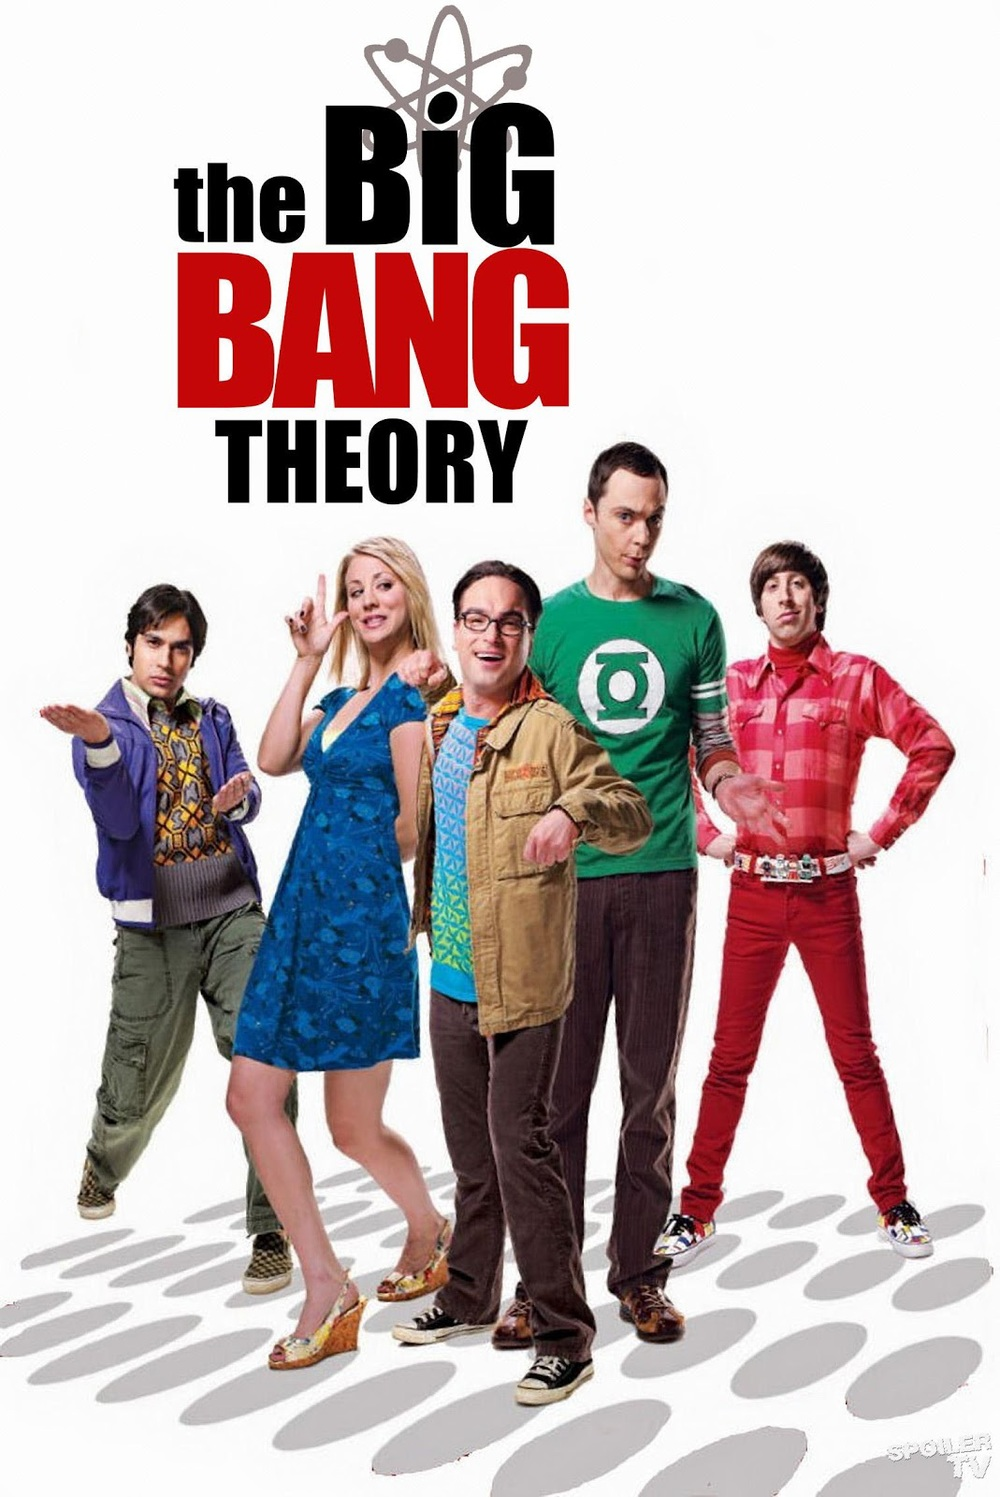 Big_bang_theory_poster11.jpg